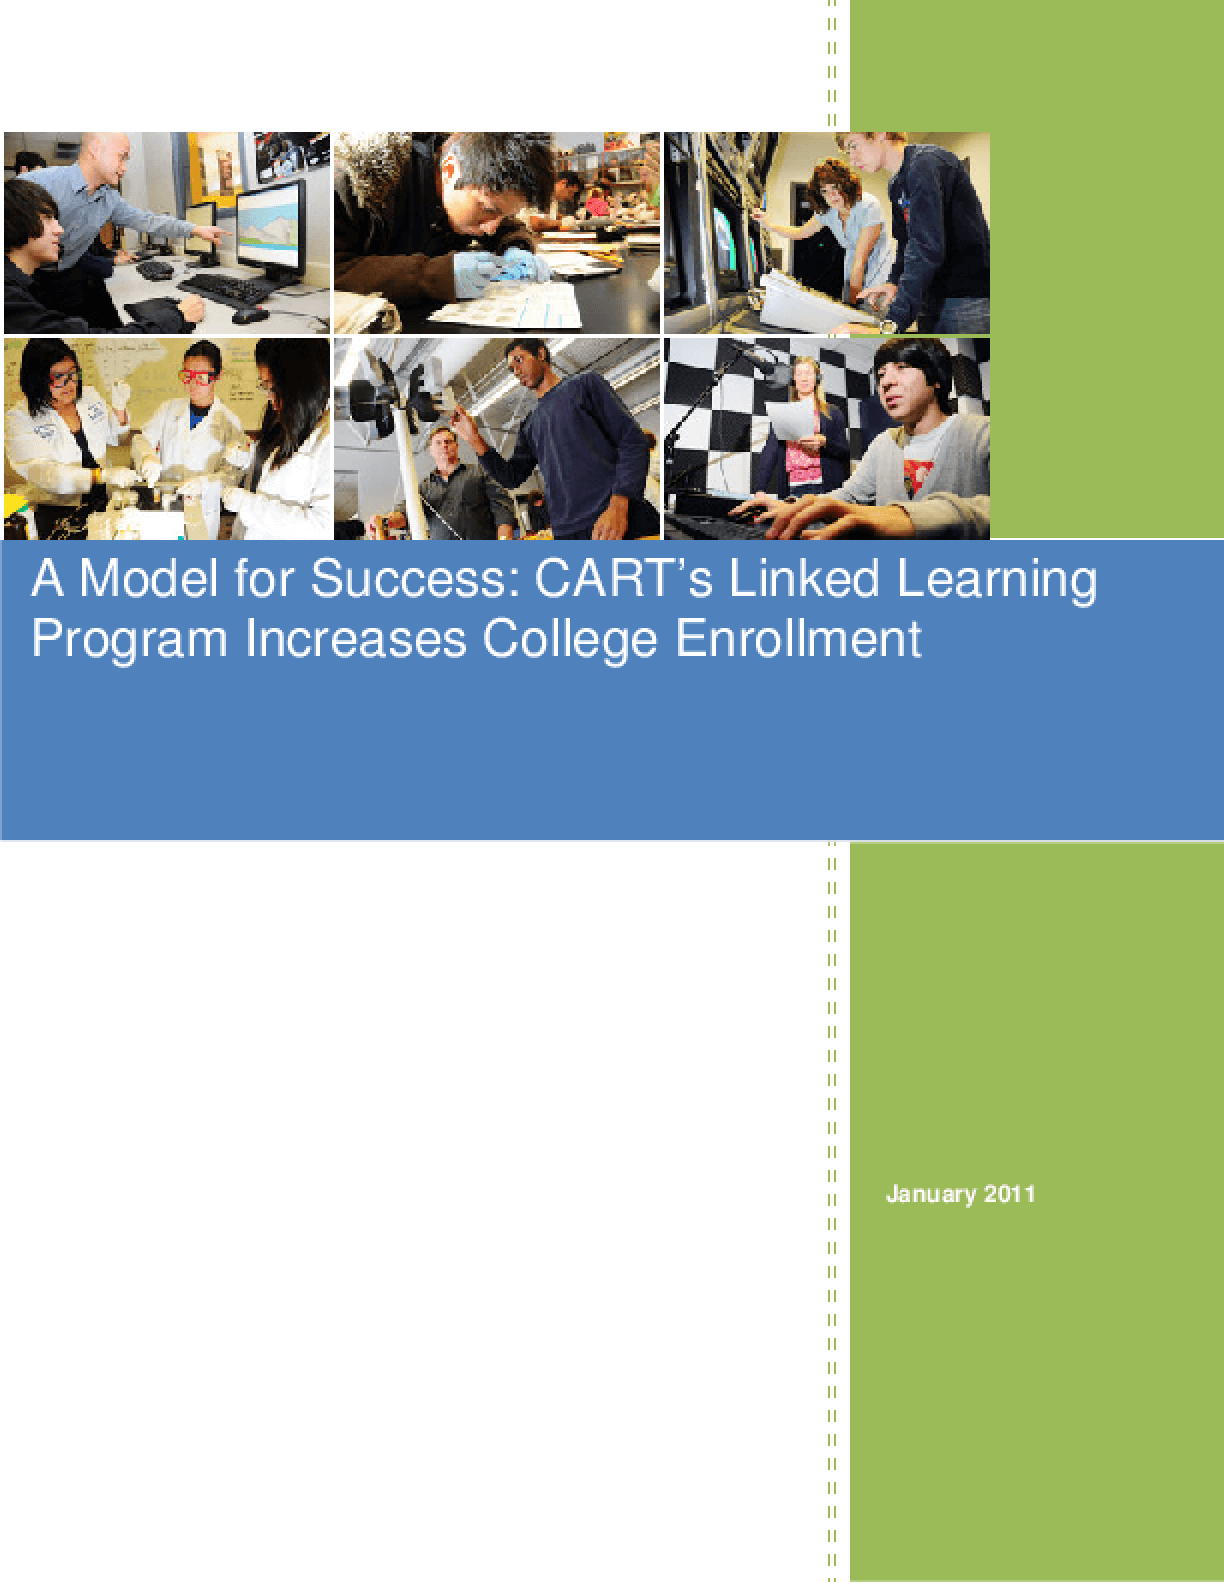 A Model for Success: CART's Linked Learning Program Increases College Enrollment